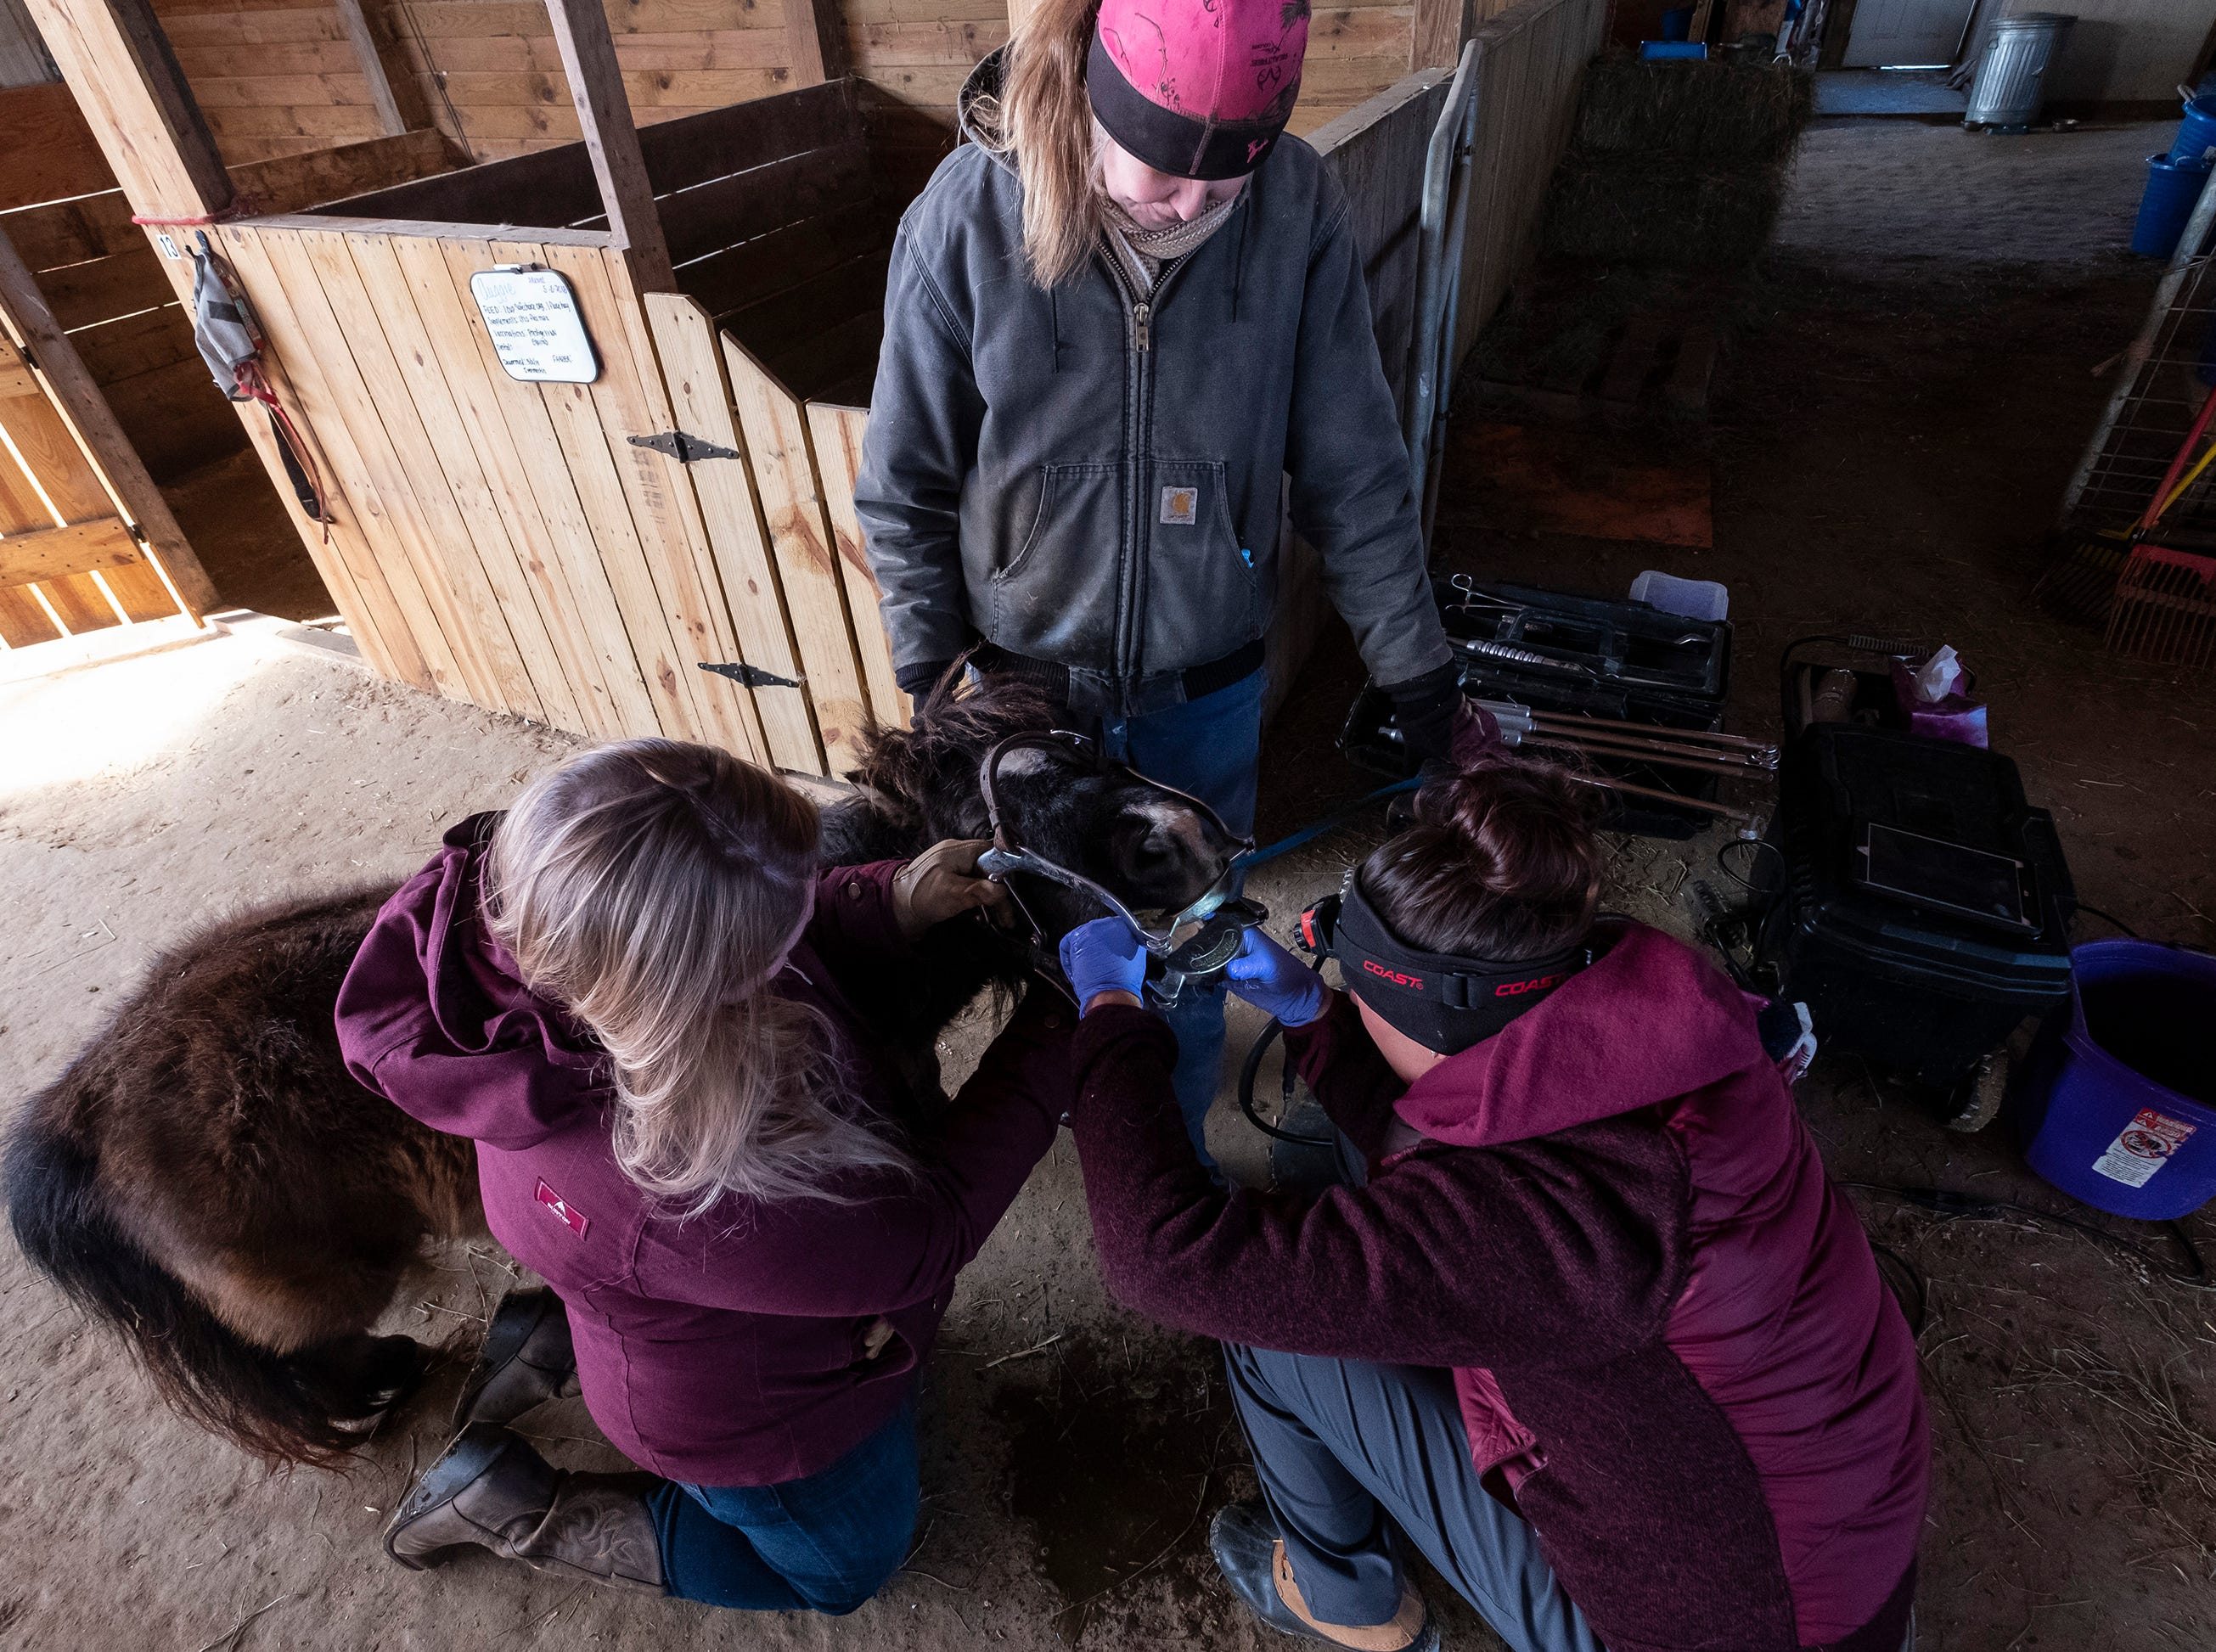 After a speculum is inserted into Priya's mouth, Equine Dental Technician Natalie Hillman, right, examines her mouth while Hillman's assistant Halley Schwab, left, and Tammie Miller hold her.